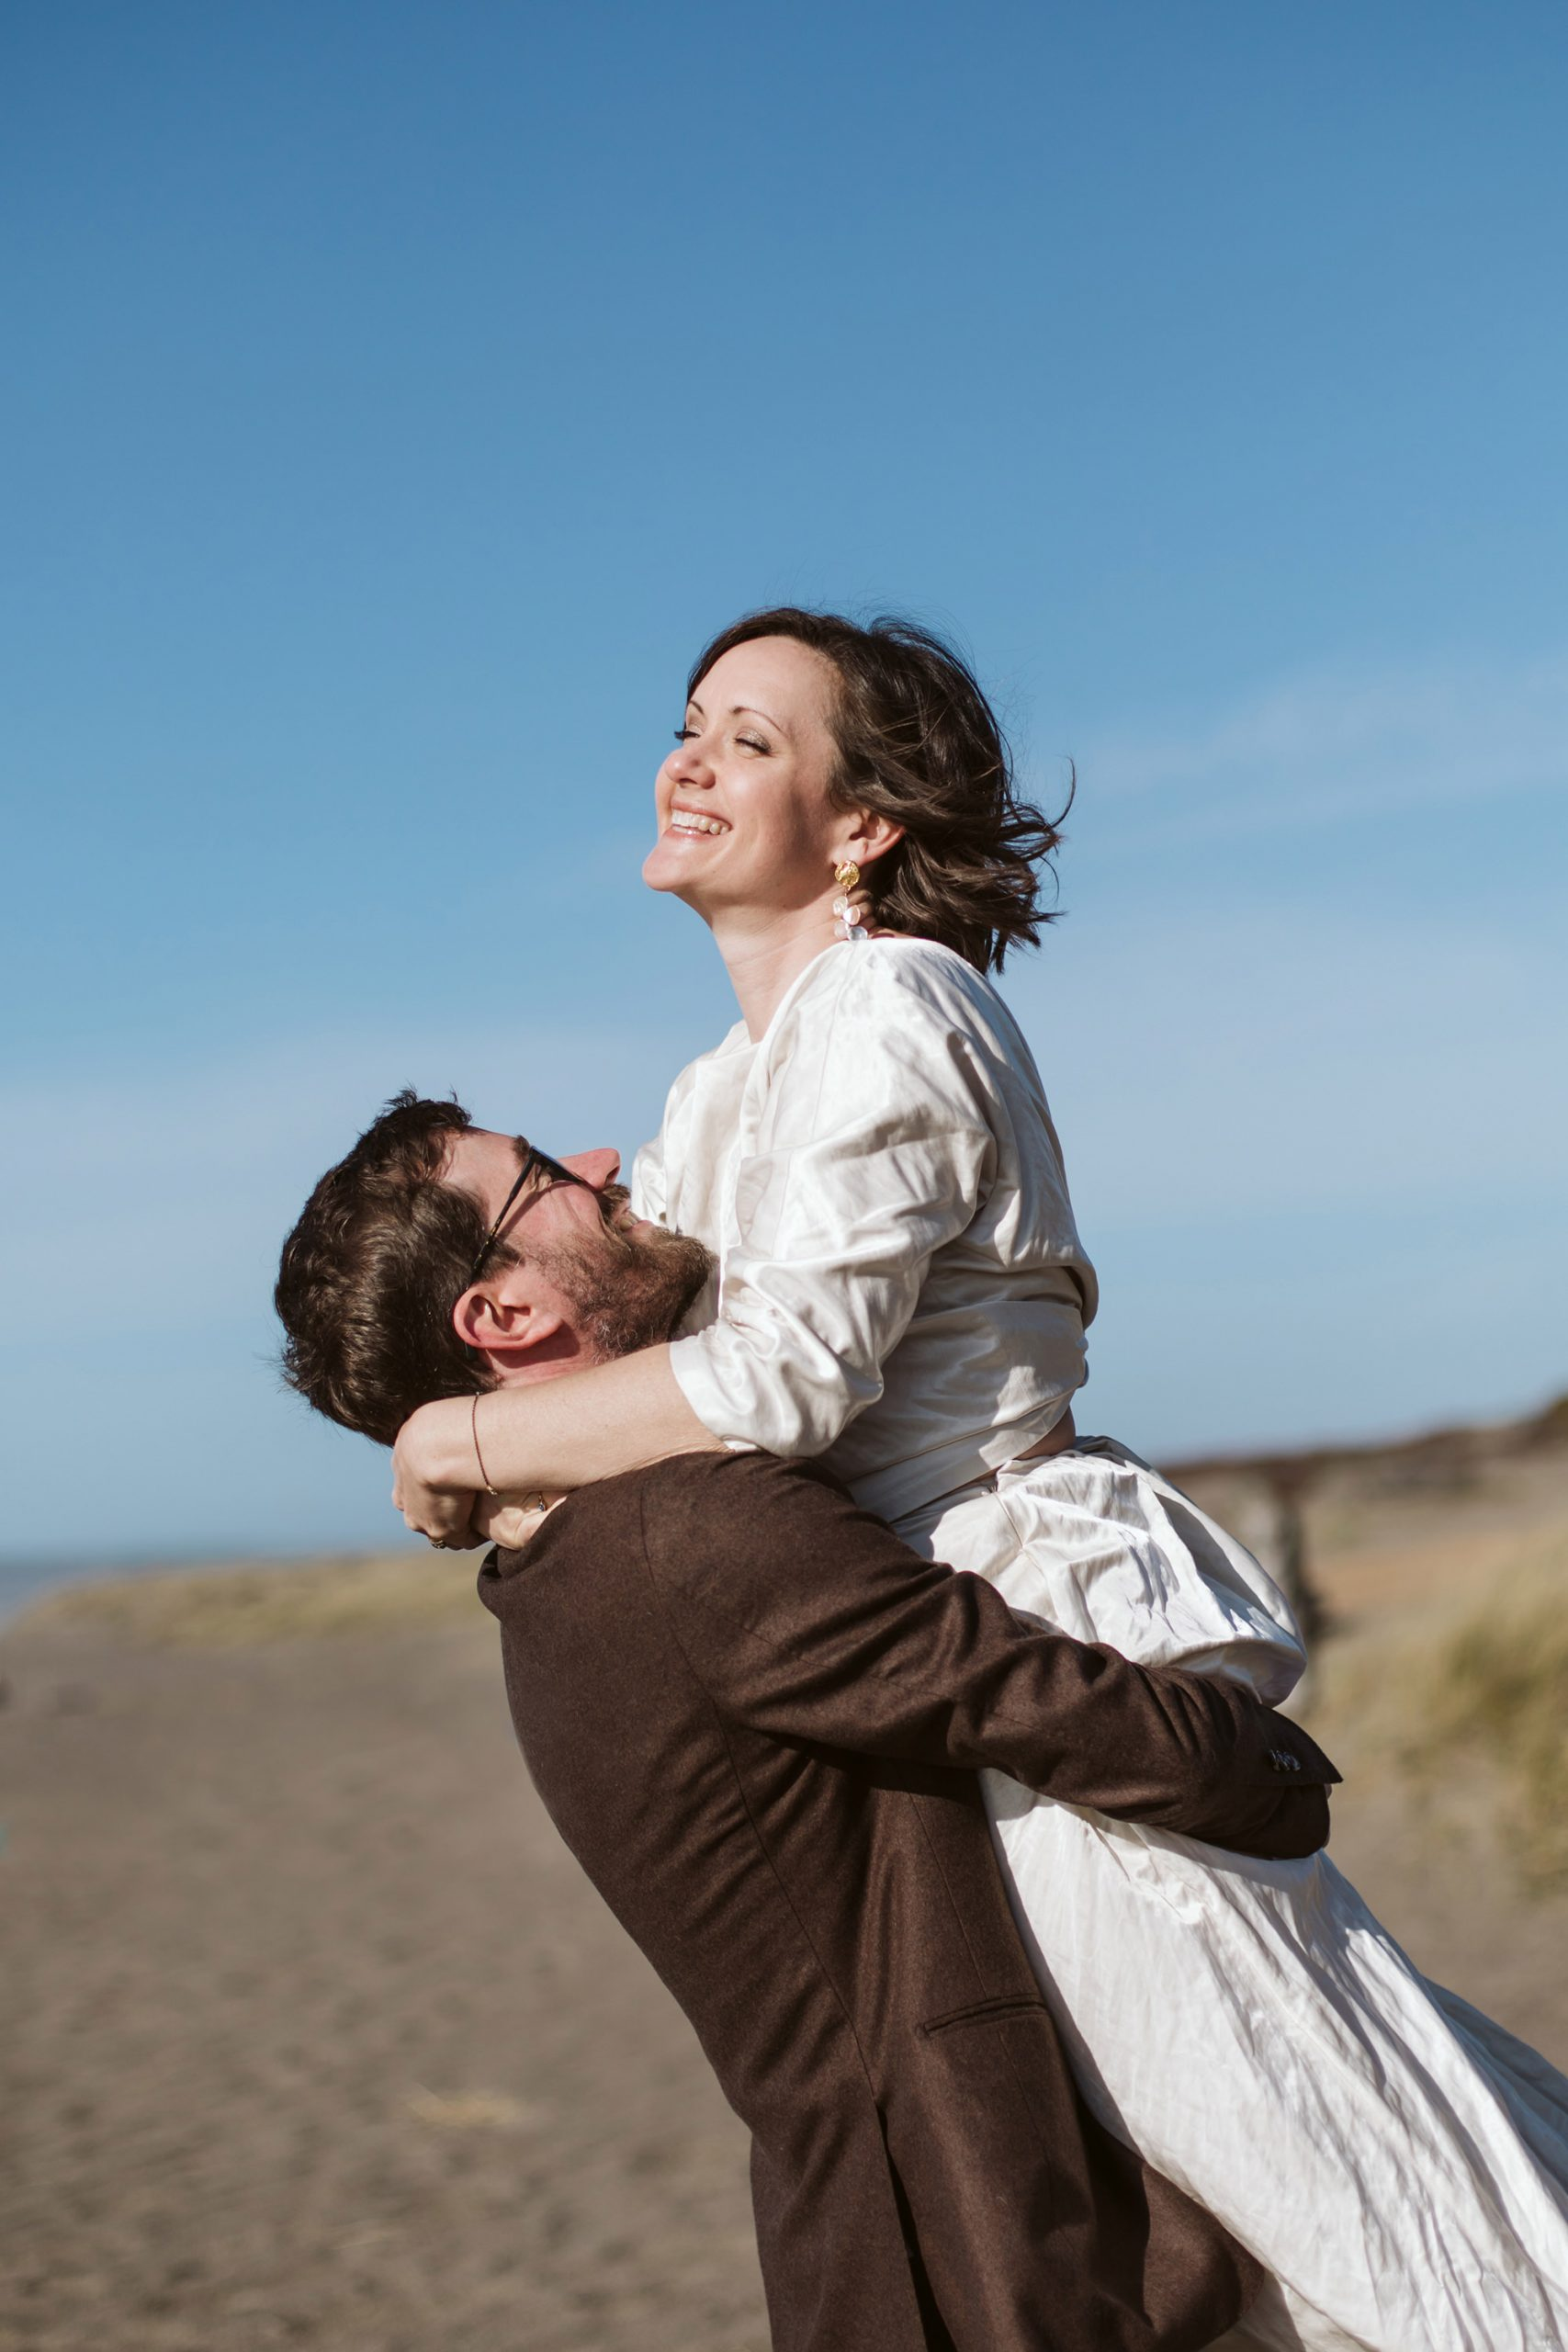 Bride and groom playing during an adventurous California elopement.